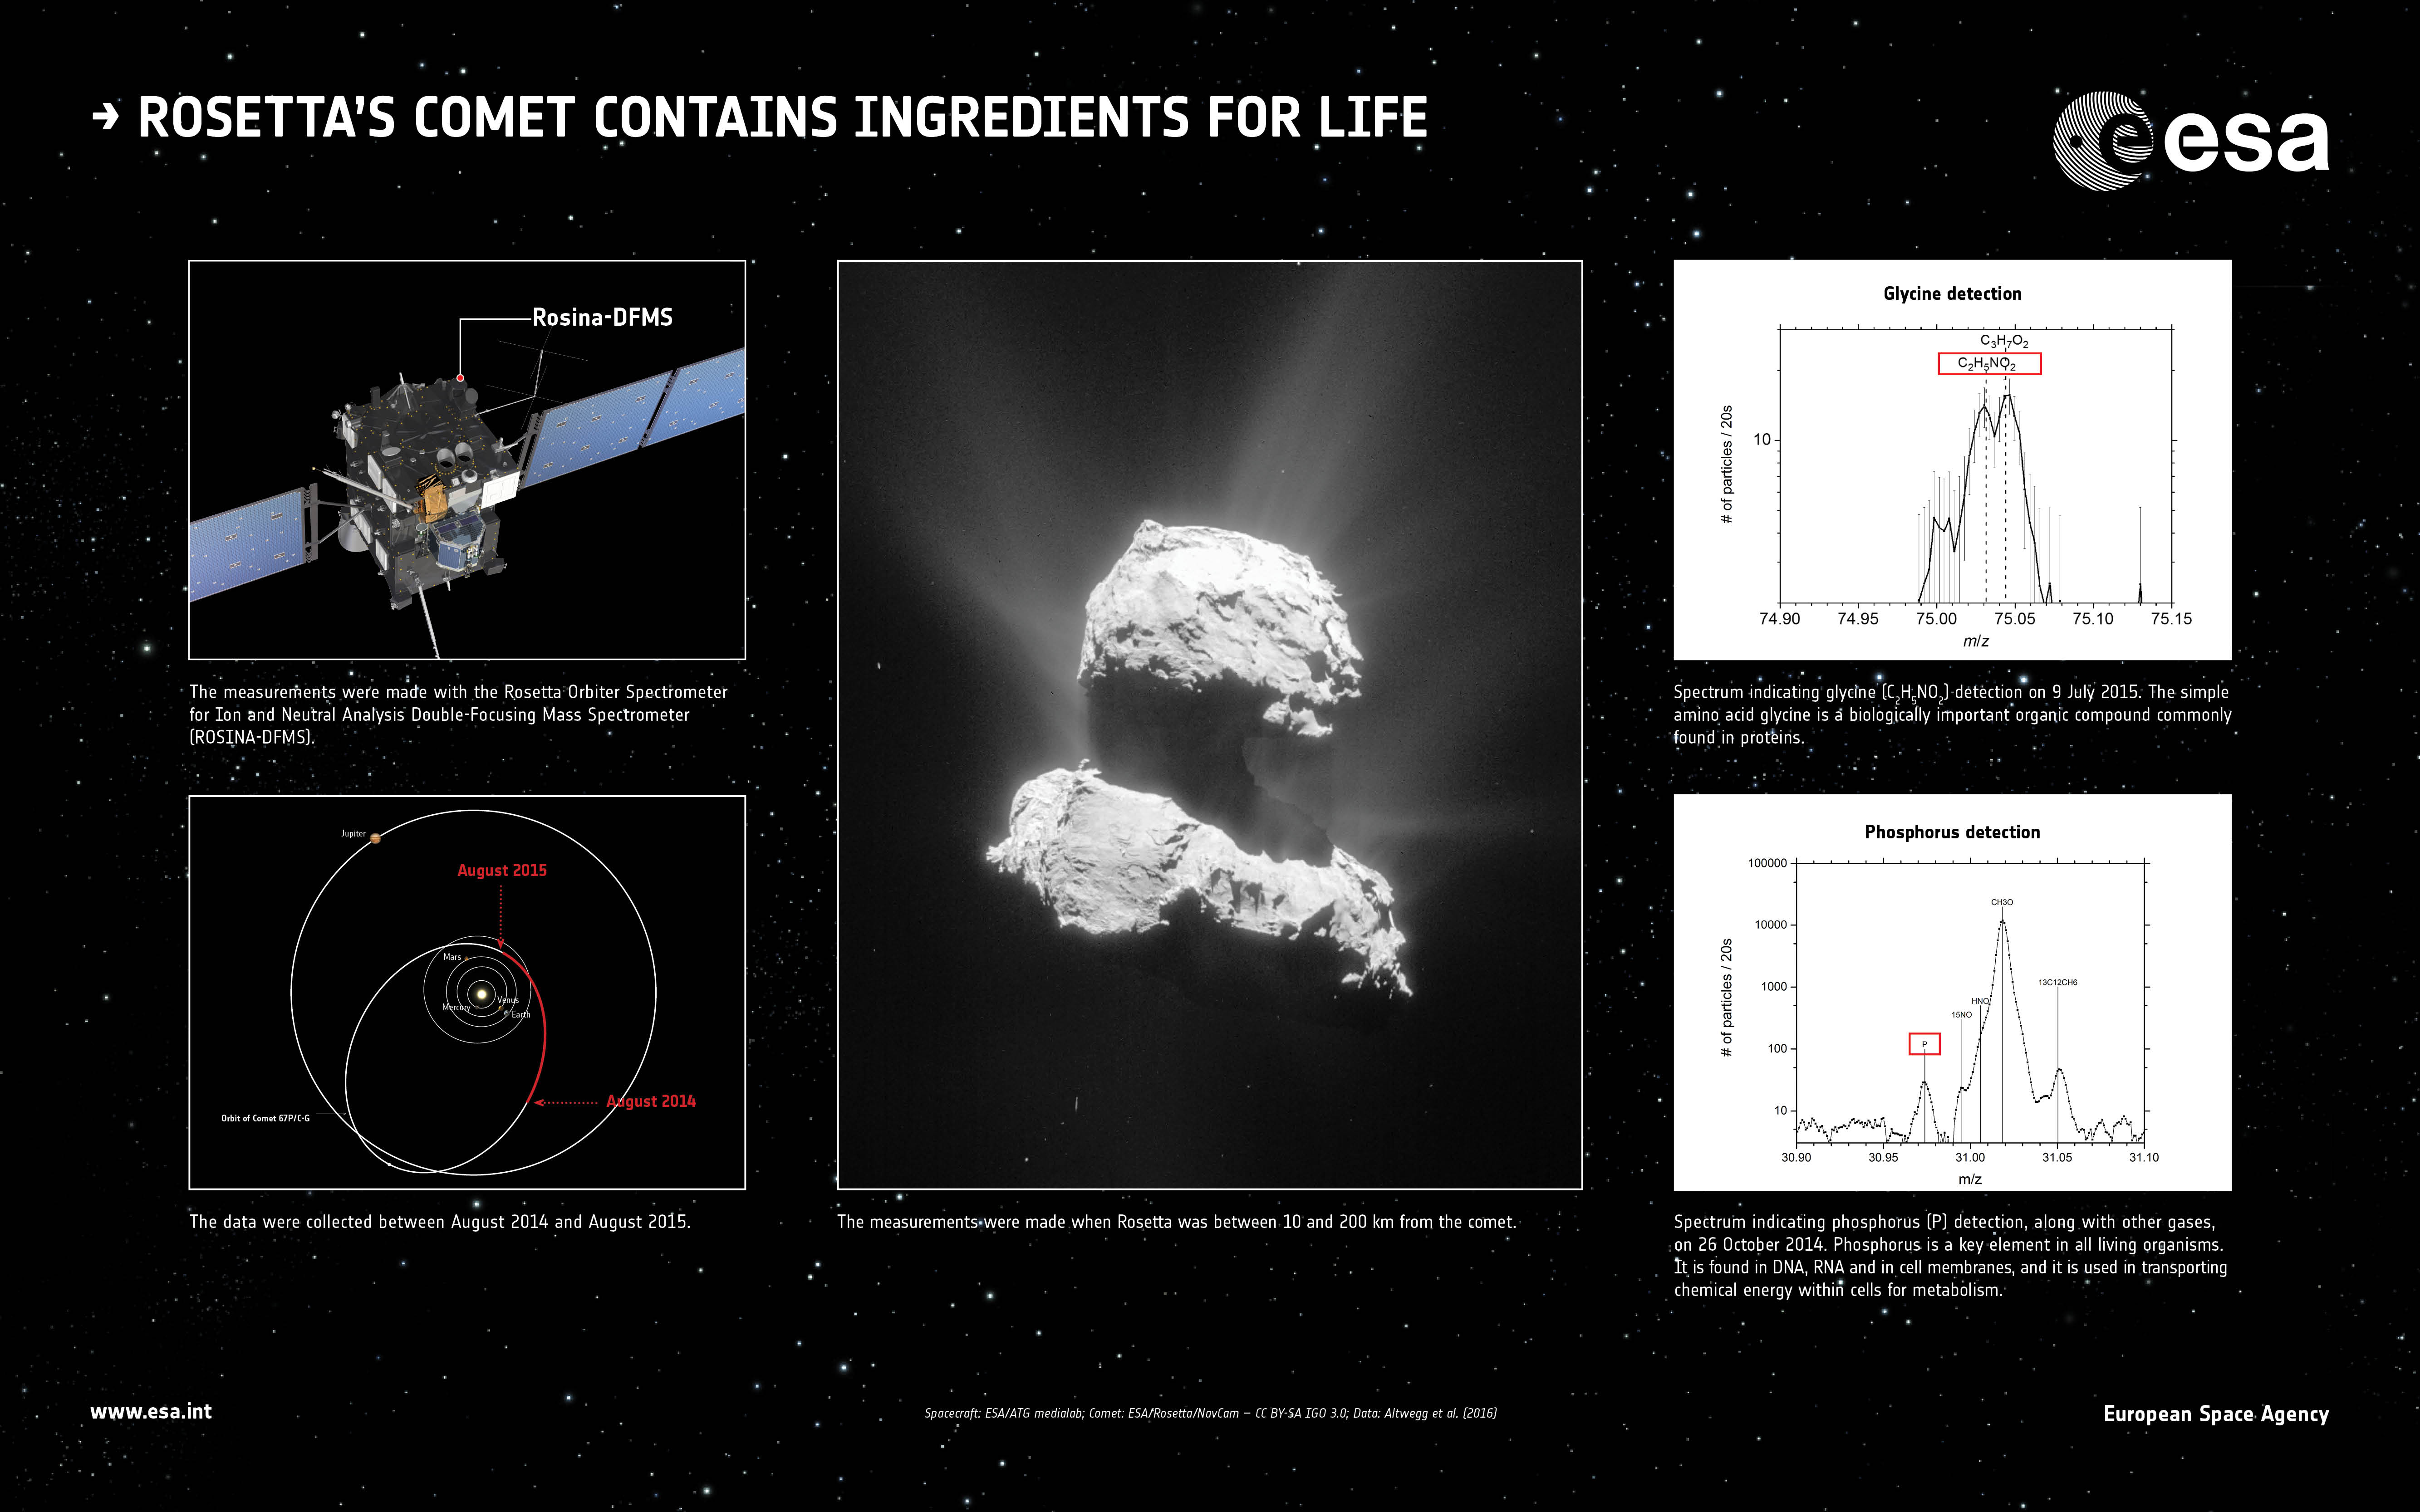 The Rosina-DFMS instrument on Rosetta has detected ingredients considered important for life as we know it on Earth, in the coma of Comet 67P/Churyumov–Gerasimenko.